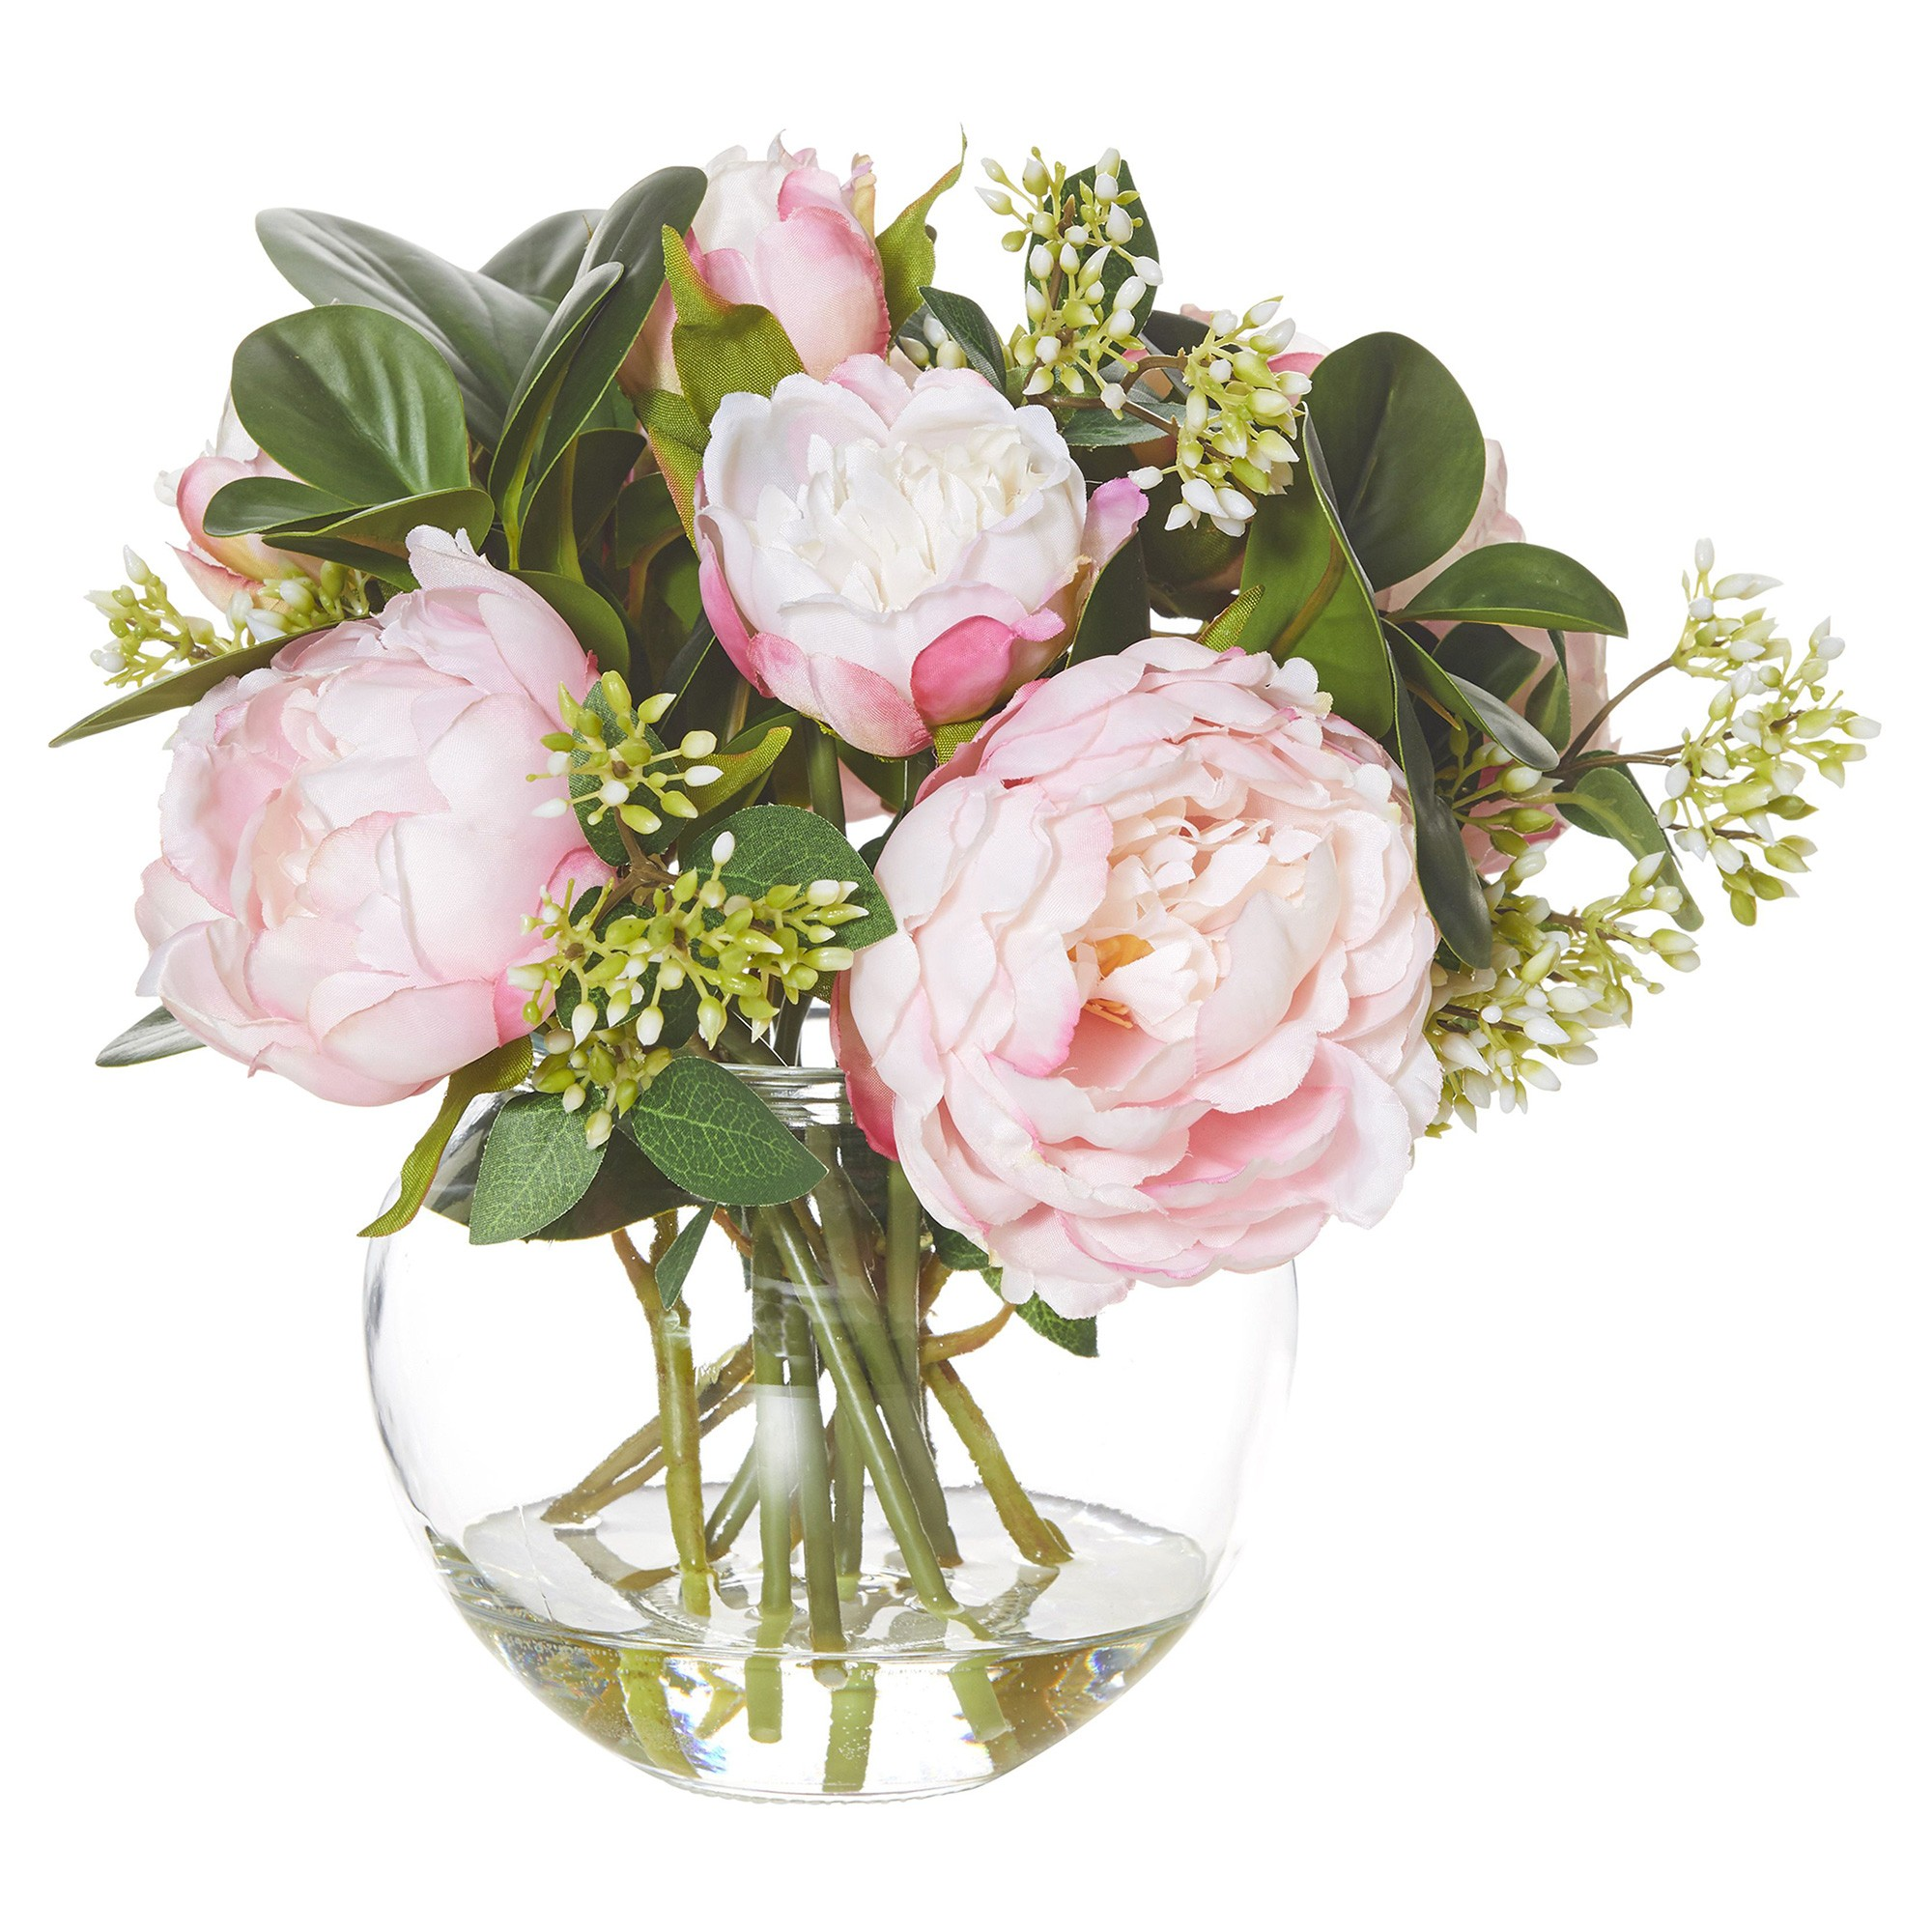 Artificial Peony Seeding Mix in Glass Fish Bowl, Pink Flower